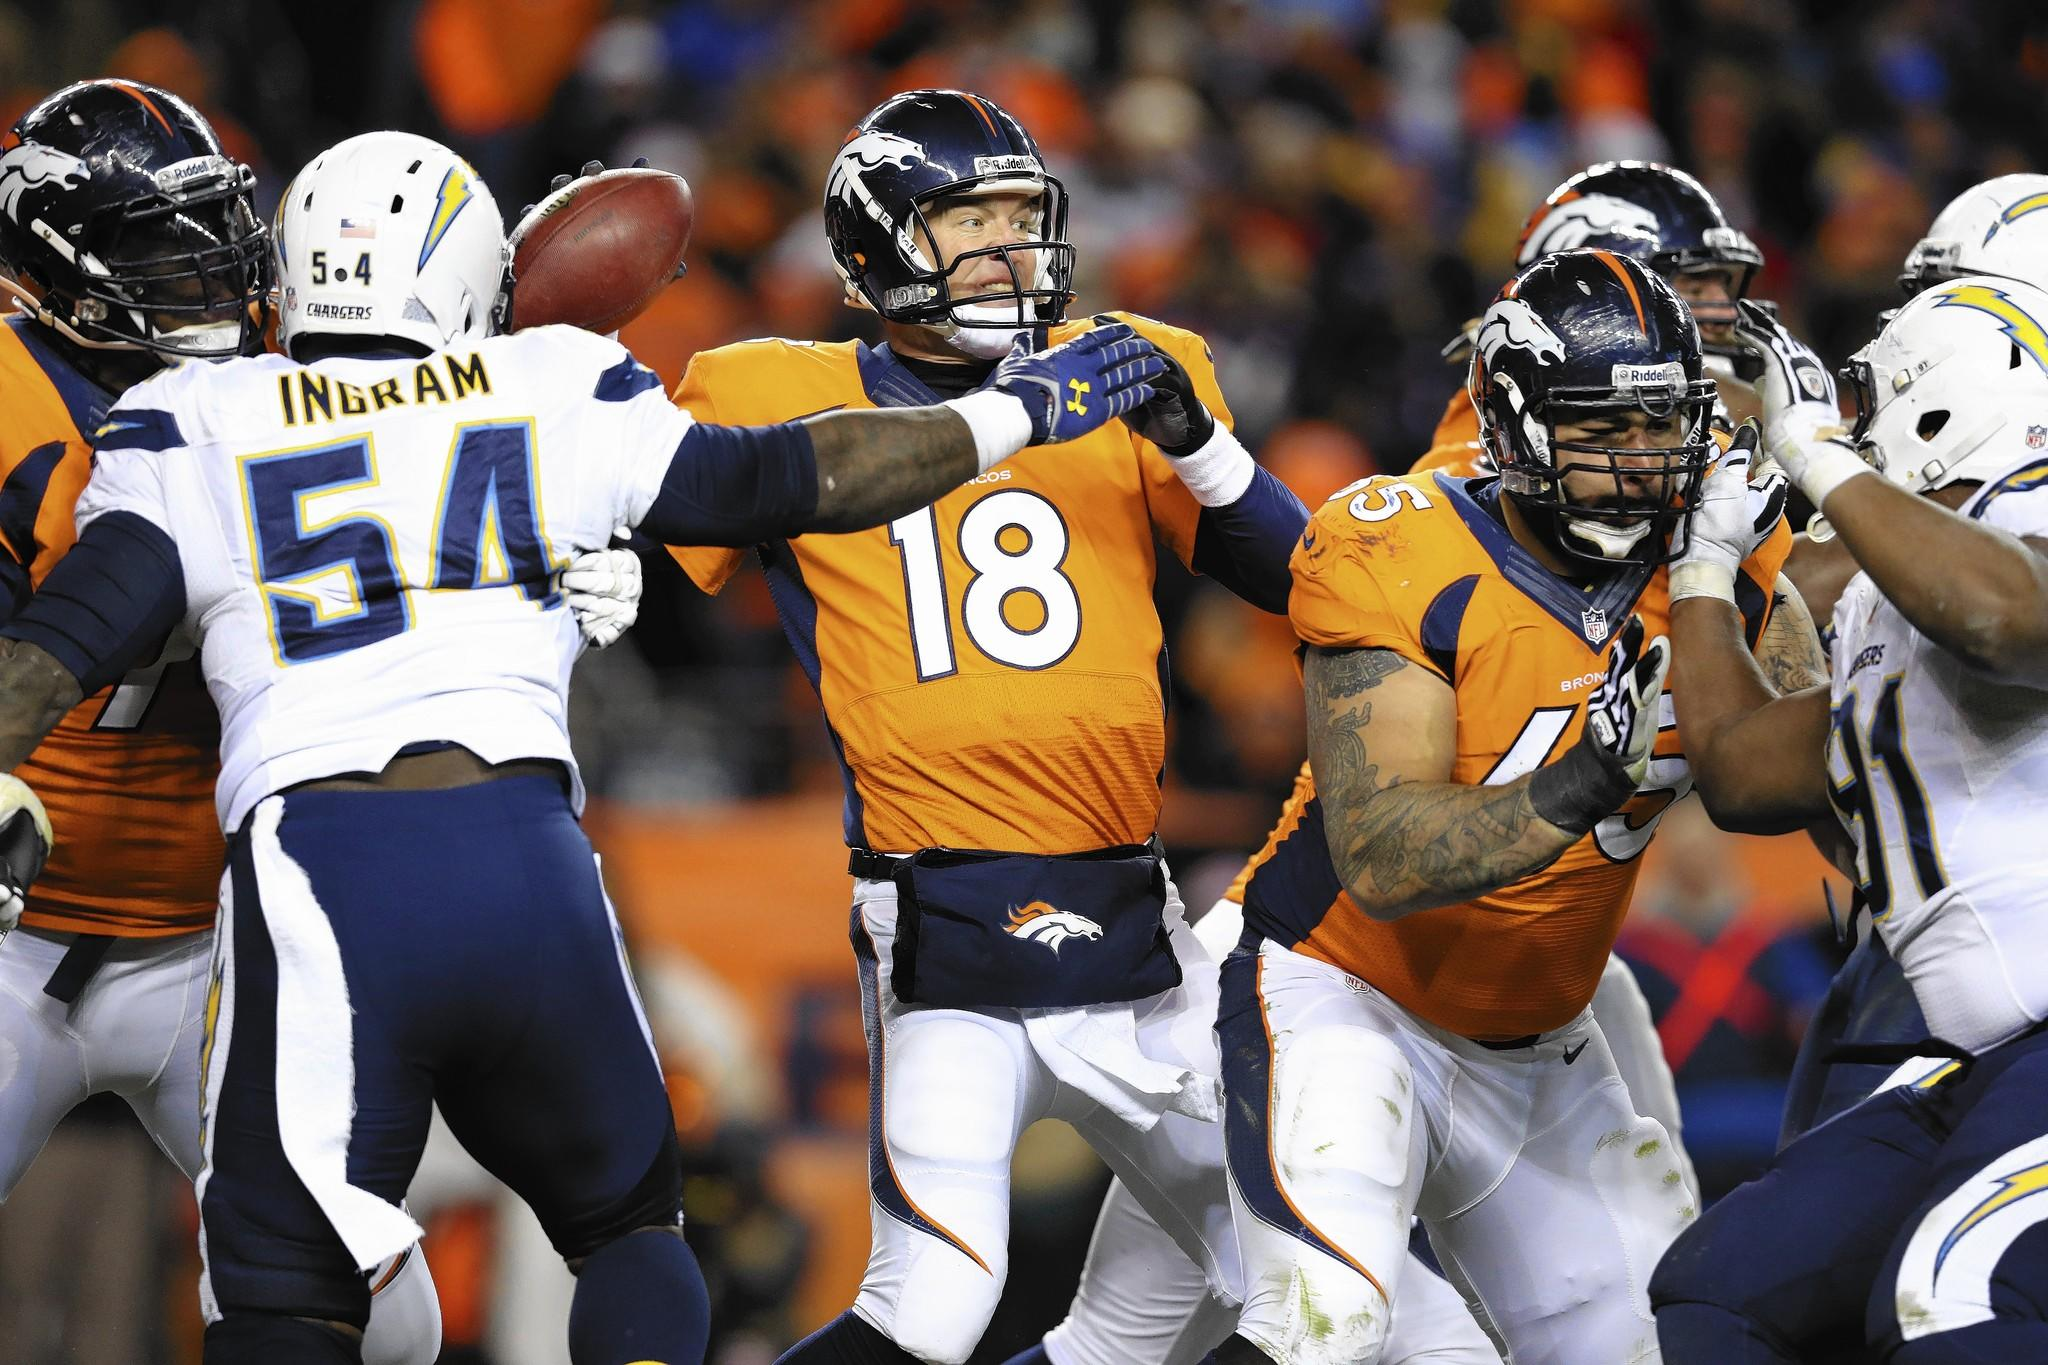 Denver Broncos quarterback Peyton Manning (18) passes while pressured by San Diego Chargers linebacker Melvin Ingram.